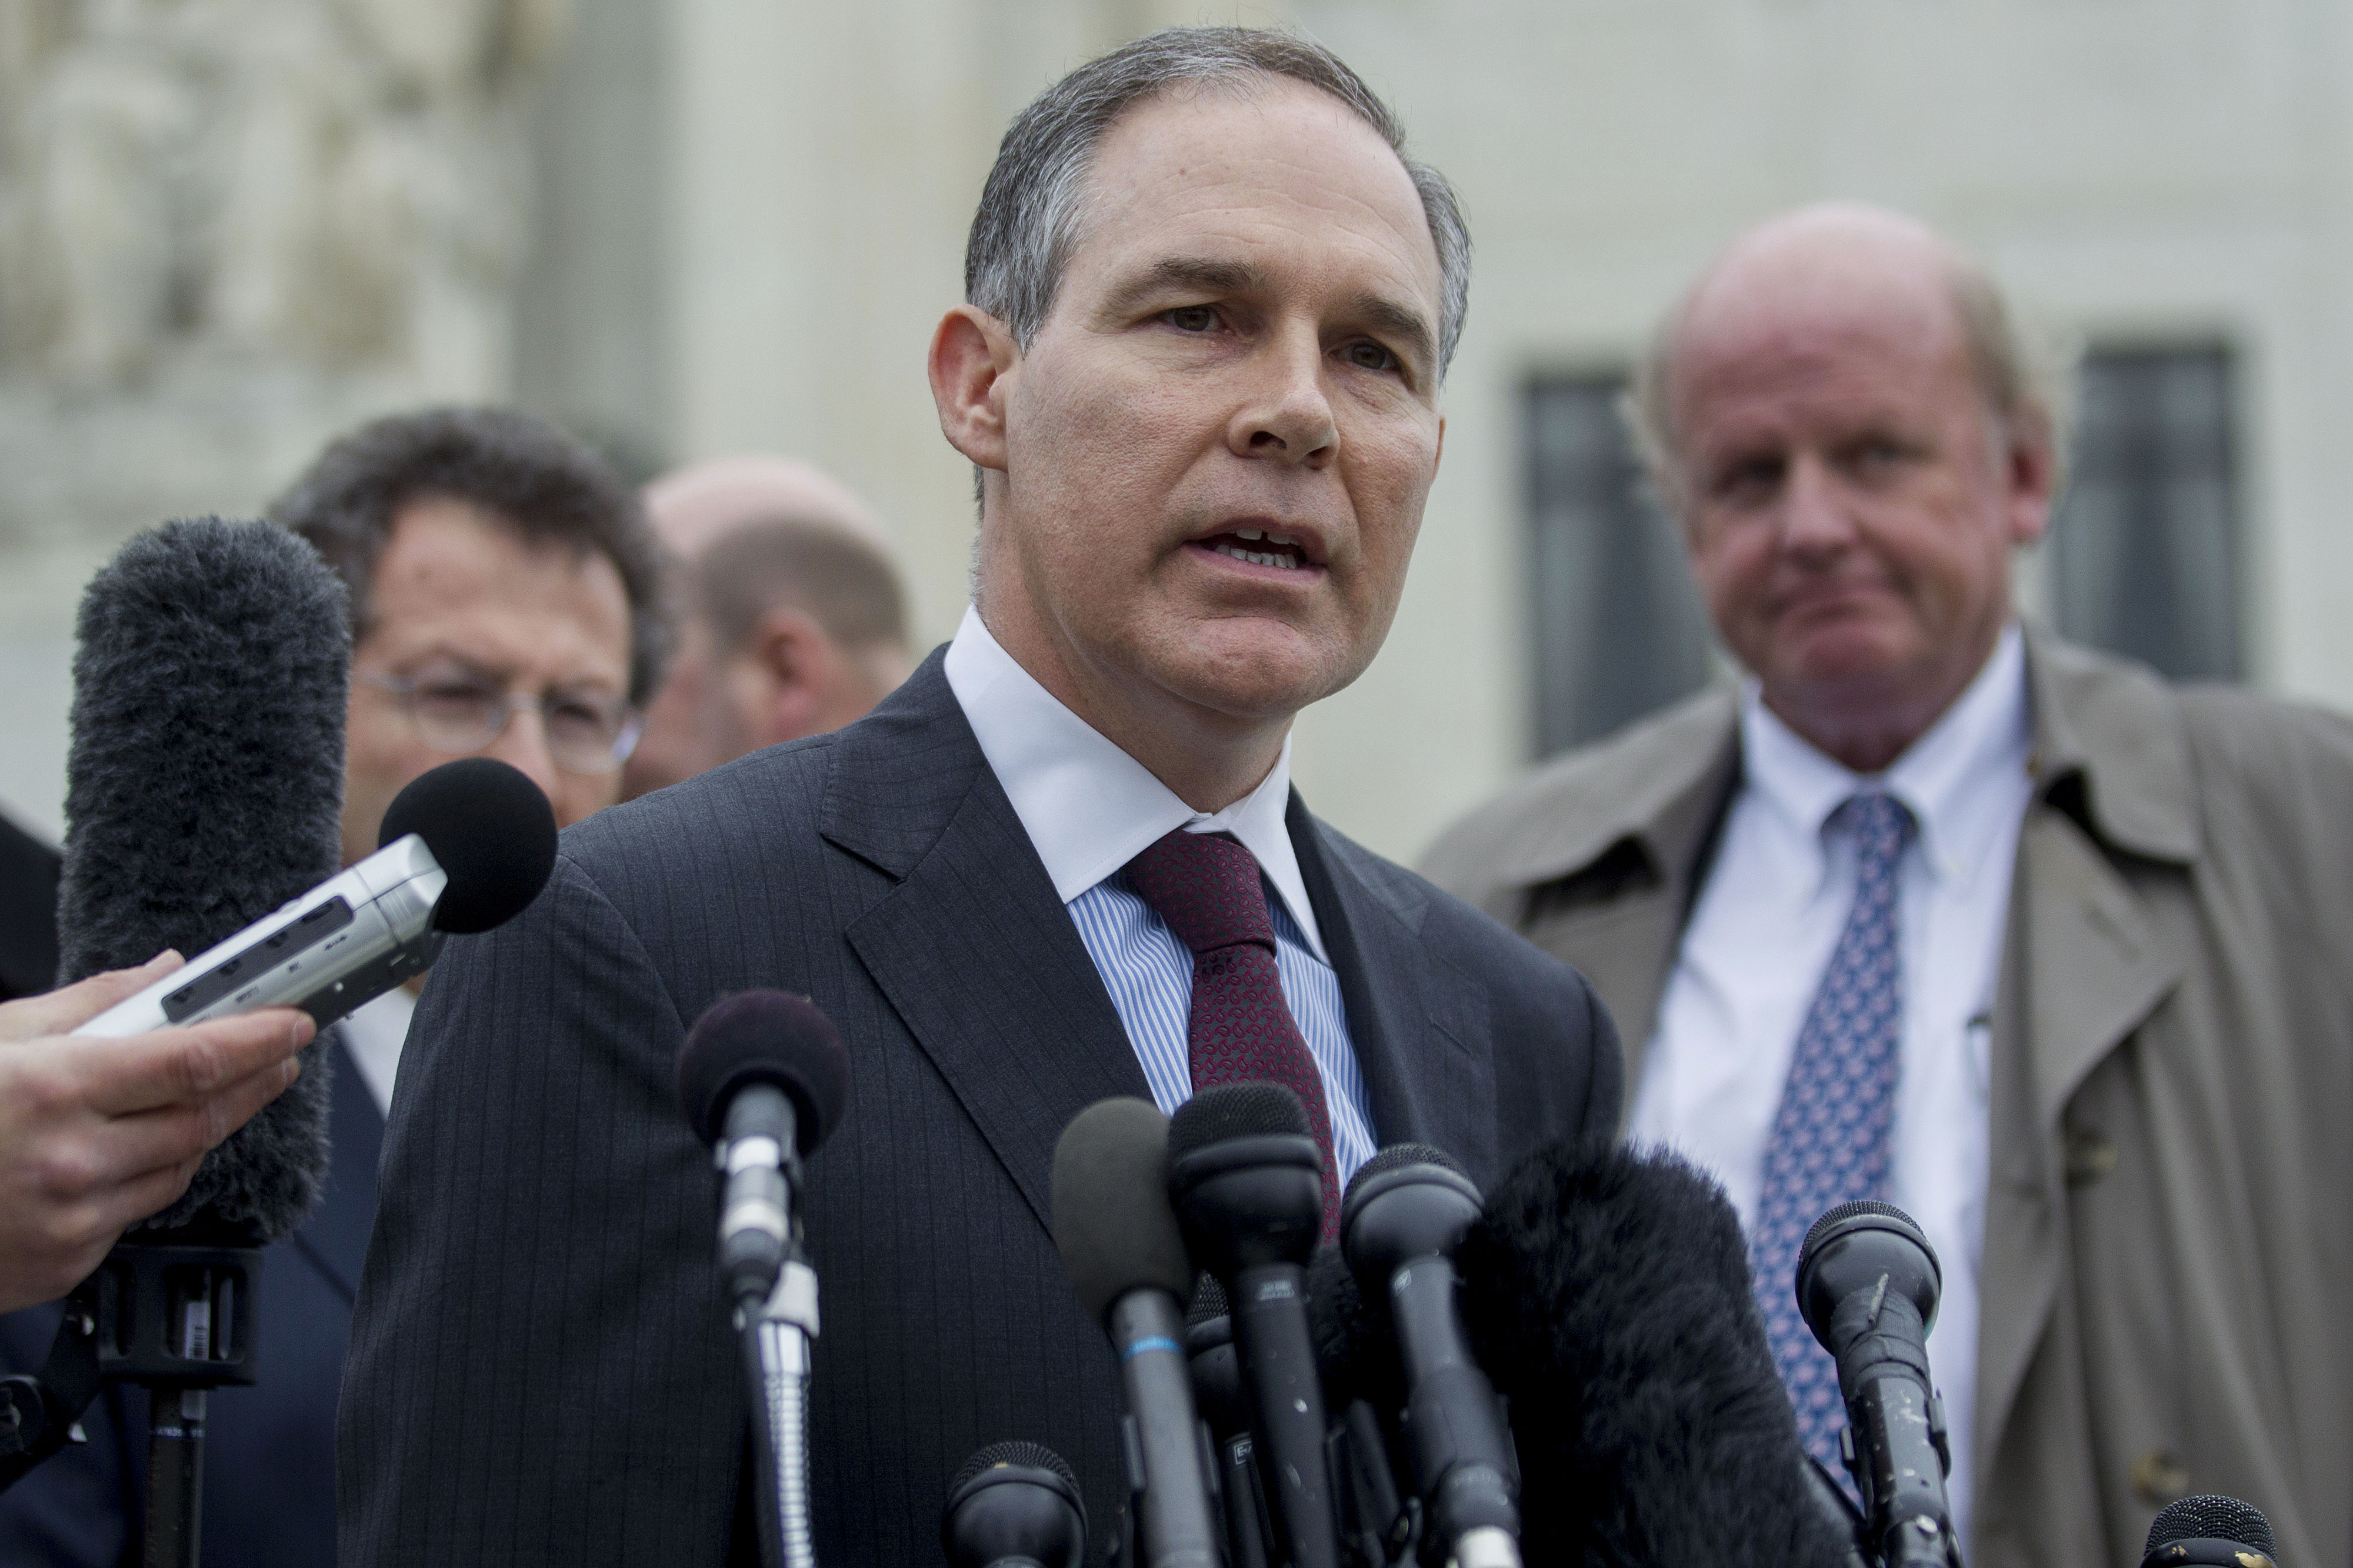 Scott Pruitt, attorney general of Oklahoma. speaks to the media in front of the U.S. Supreme Court in Washington, D.C., U.S., on Wednesday, March 4, 2015.